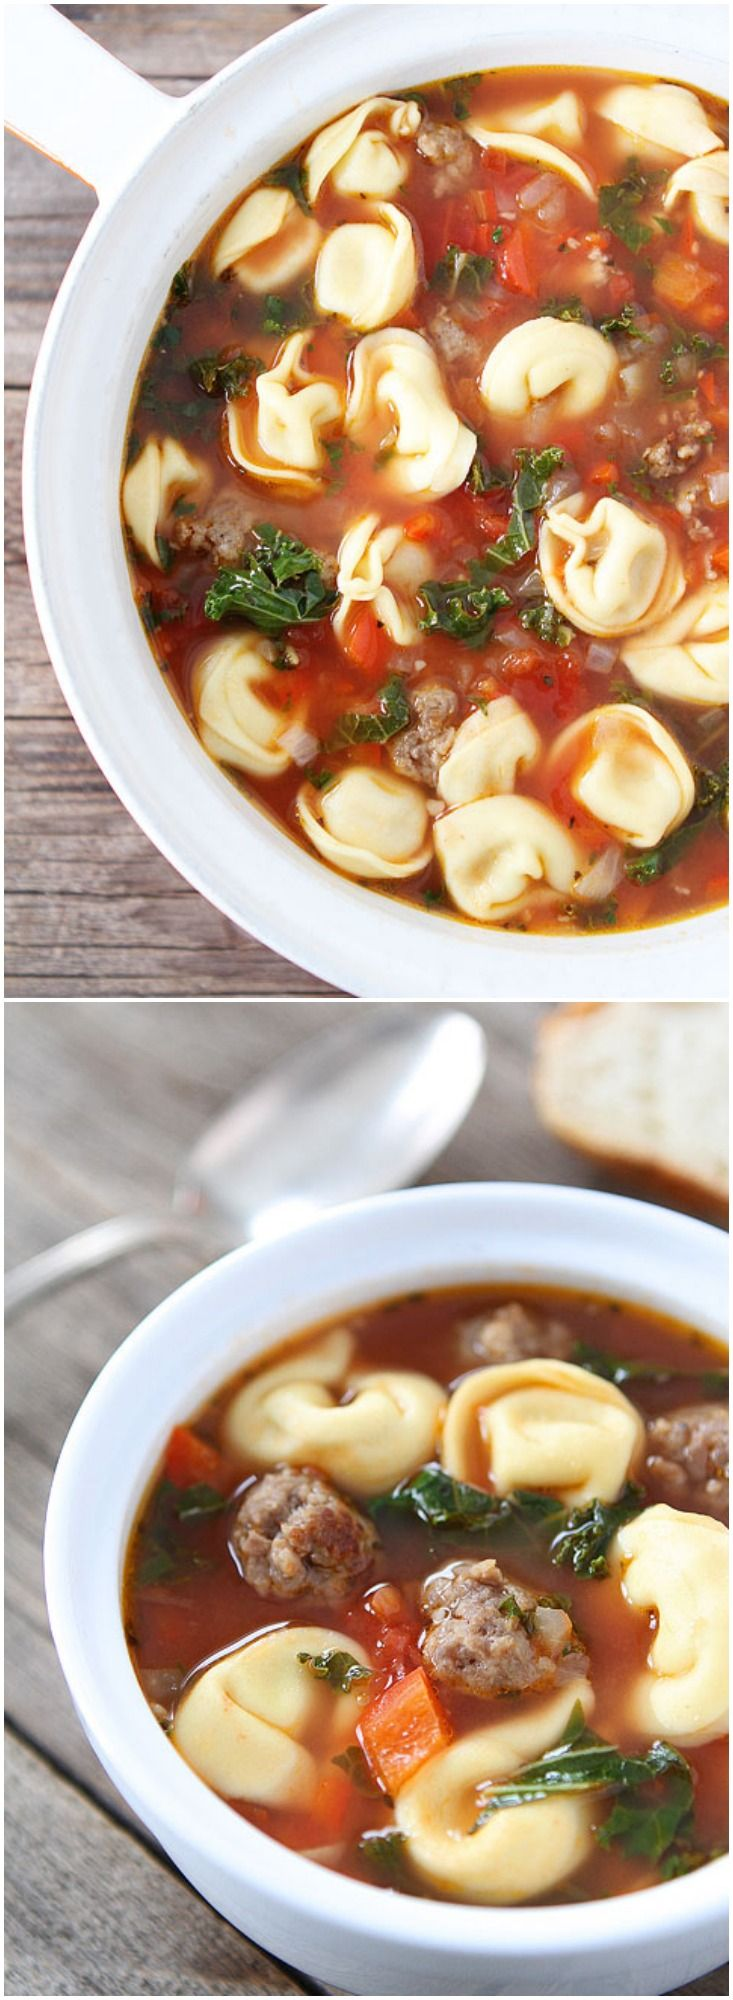 Italian Sausage Tortellini Soup Recipe on twopeasandtheirpod.com This soup is easy to make and always a favorite! #soup